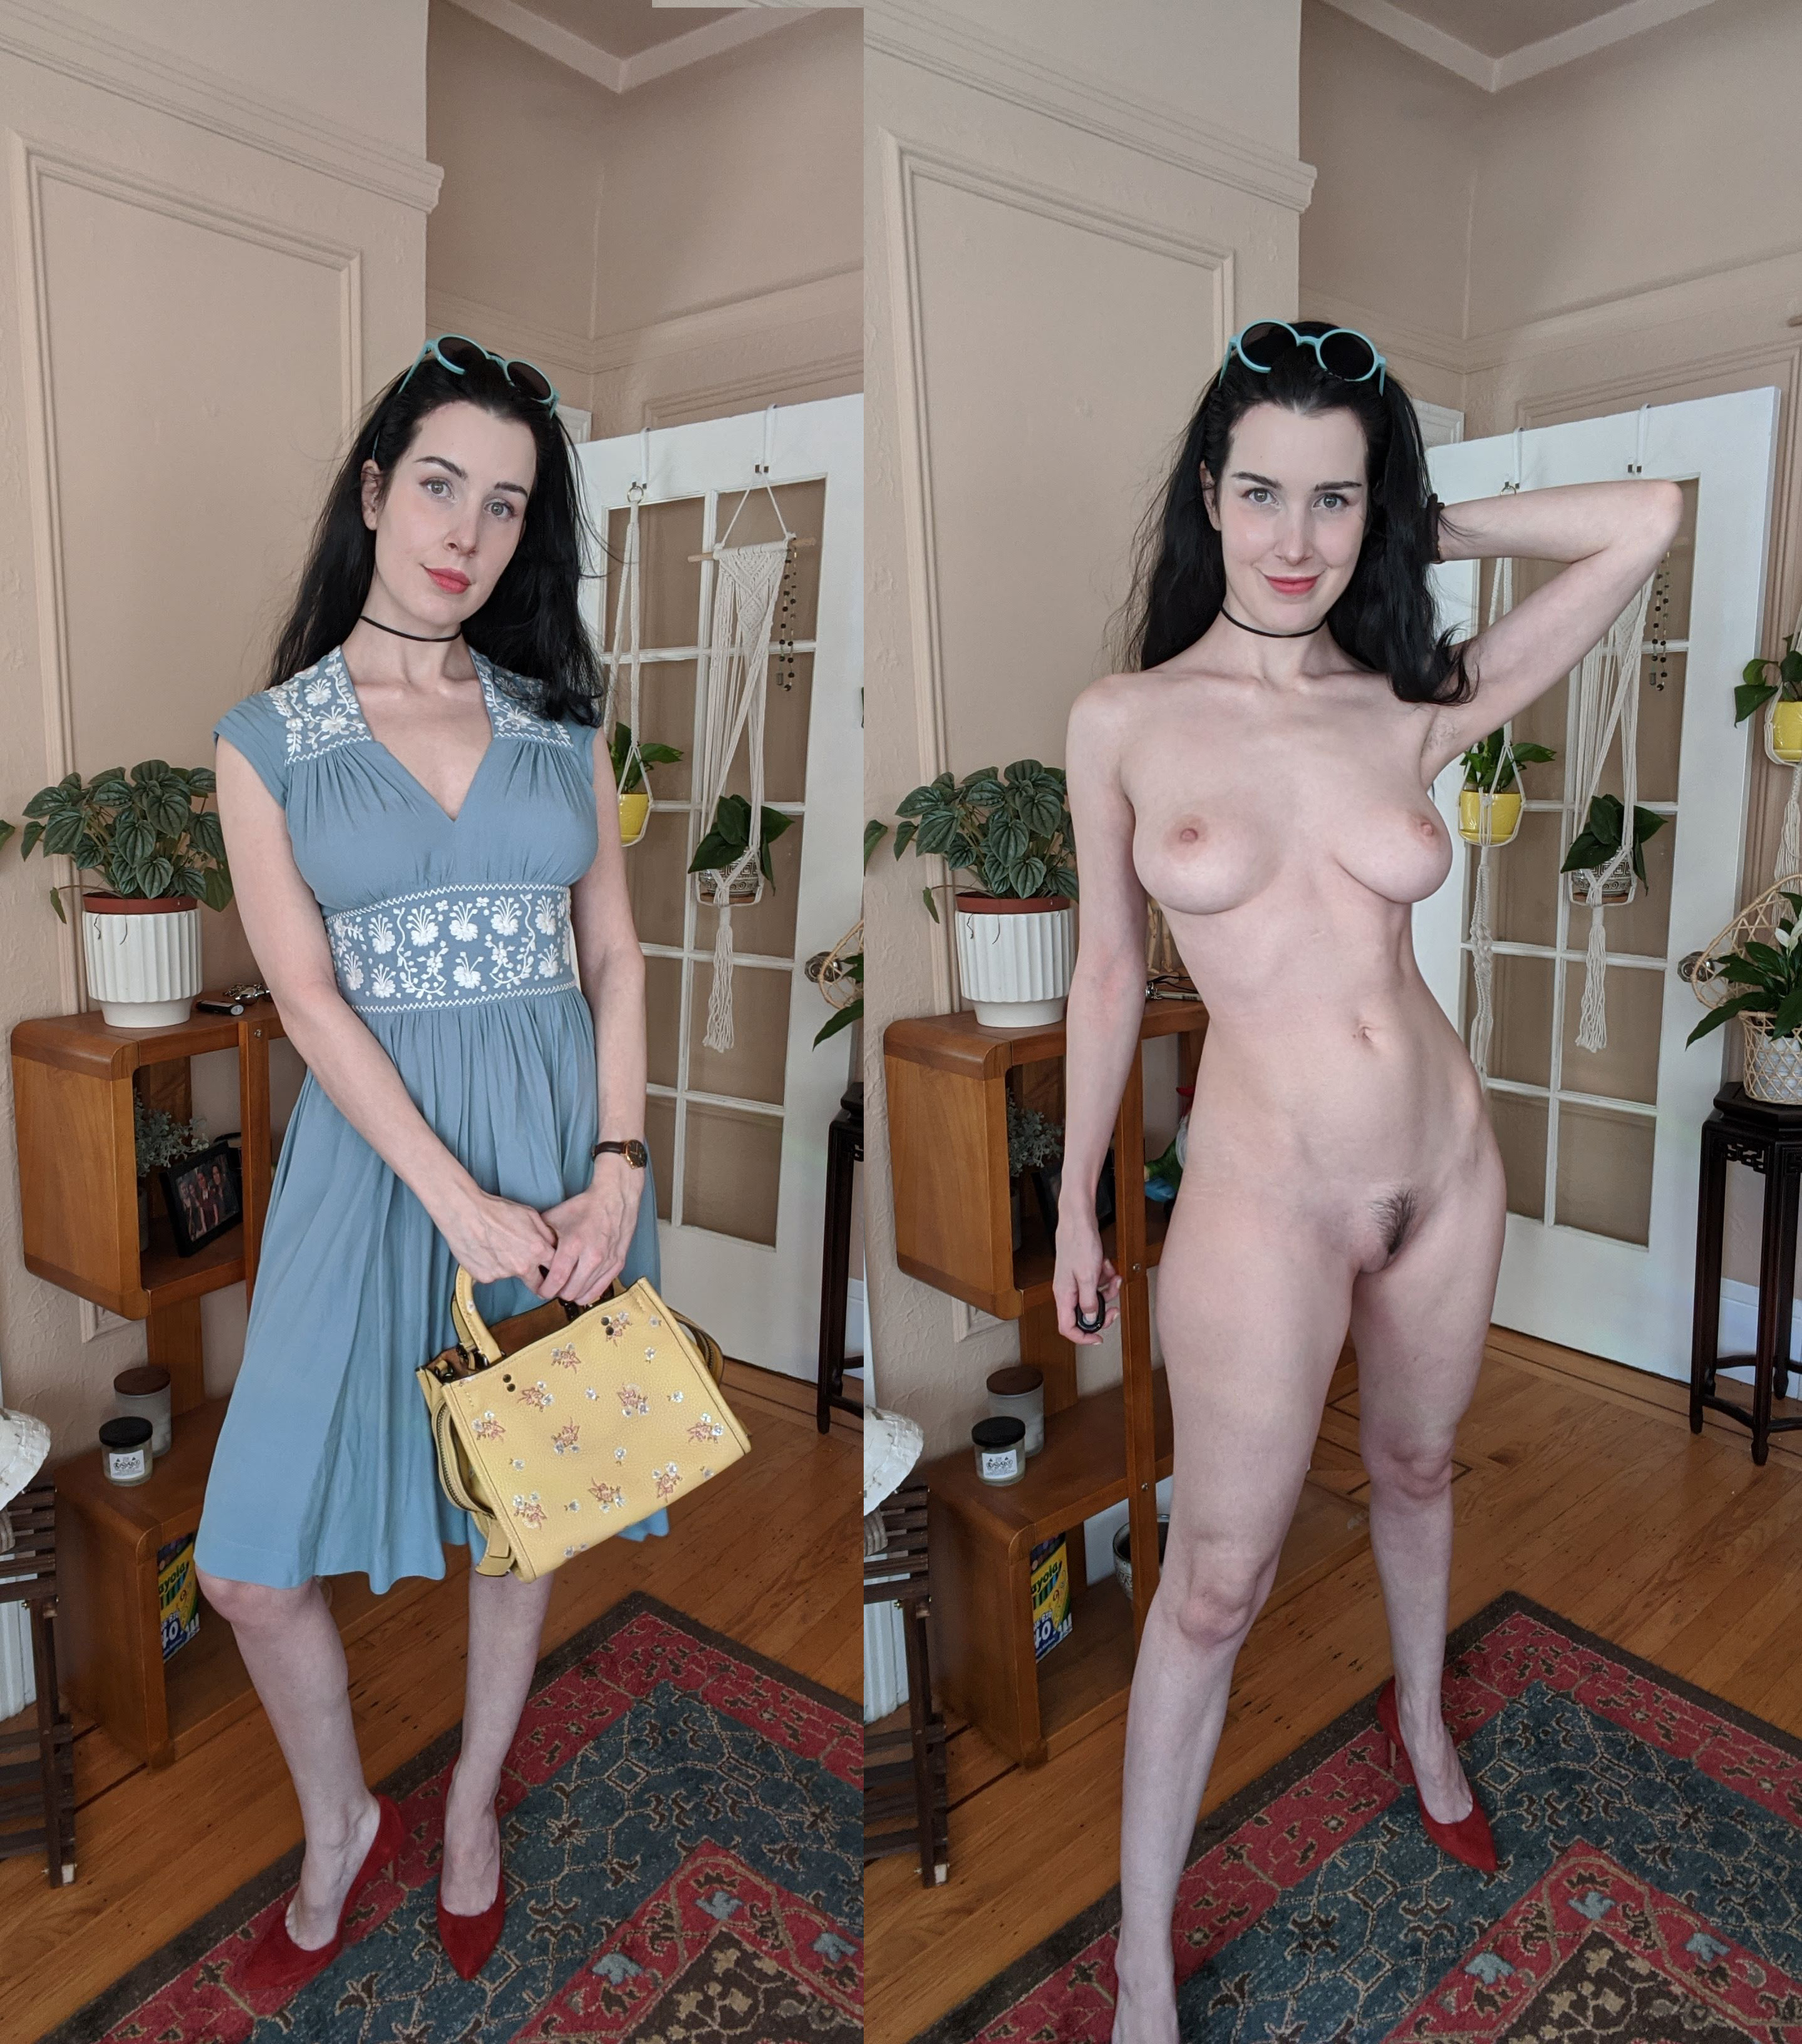 the right way to shower porn photo eporner #amateur #babe #beforeafter #clothedunclothed #dressedundressed #dressedundressed #glasses #nerd #onoff #pretty